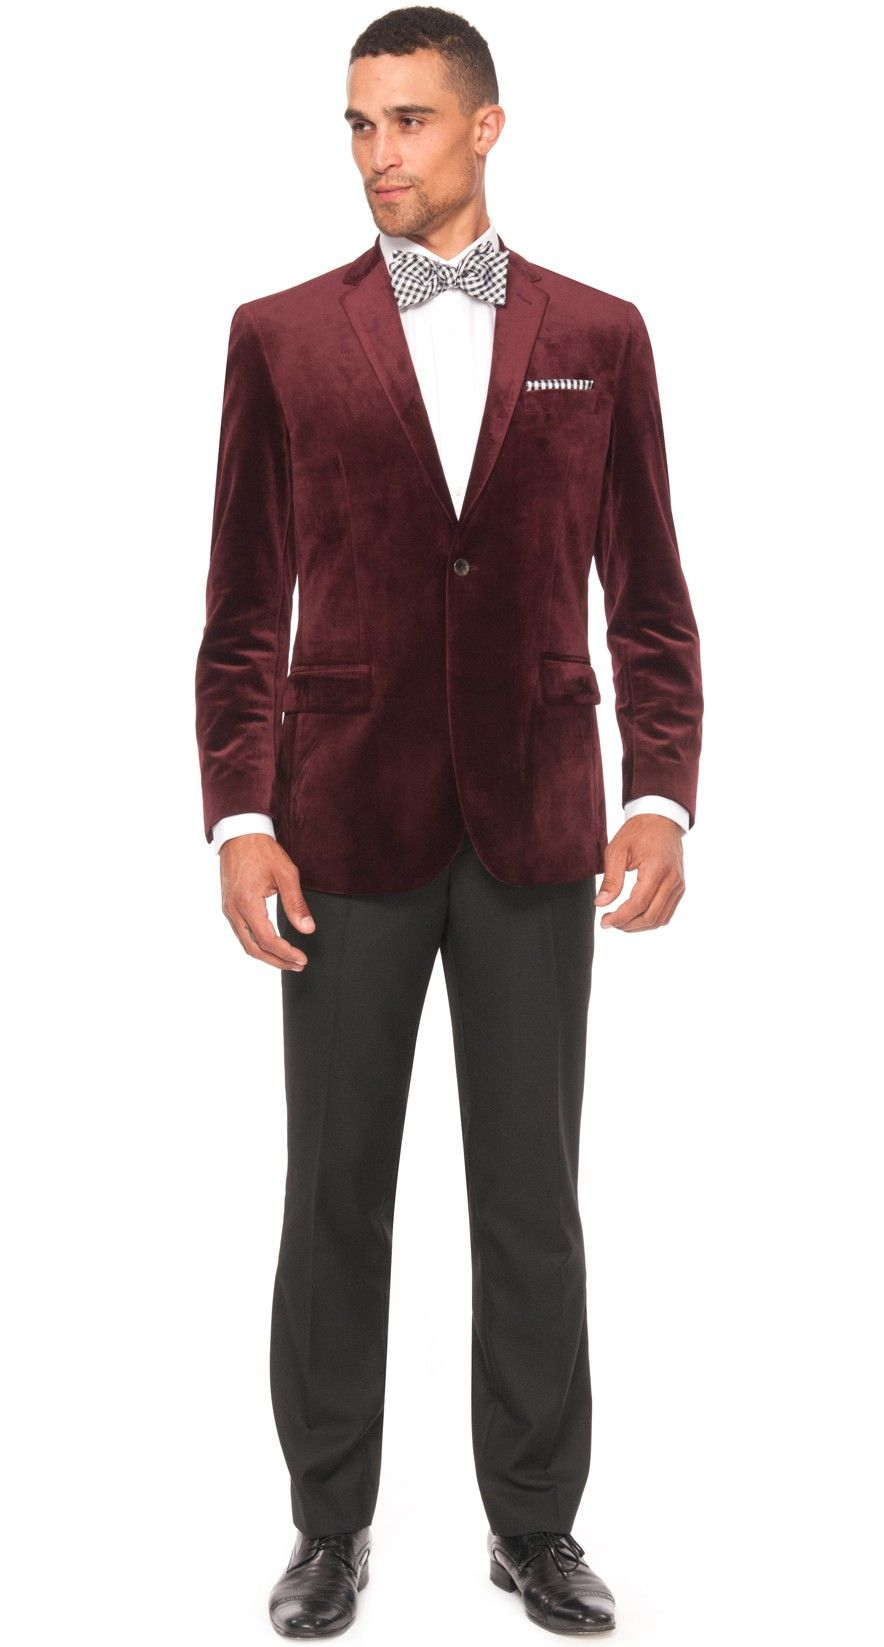 Lexington Velvet Men's Sport Coat - Wine | Fashionable | Pinterest ...